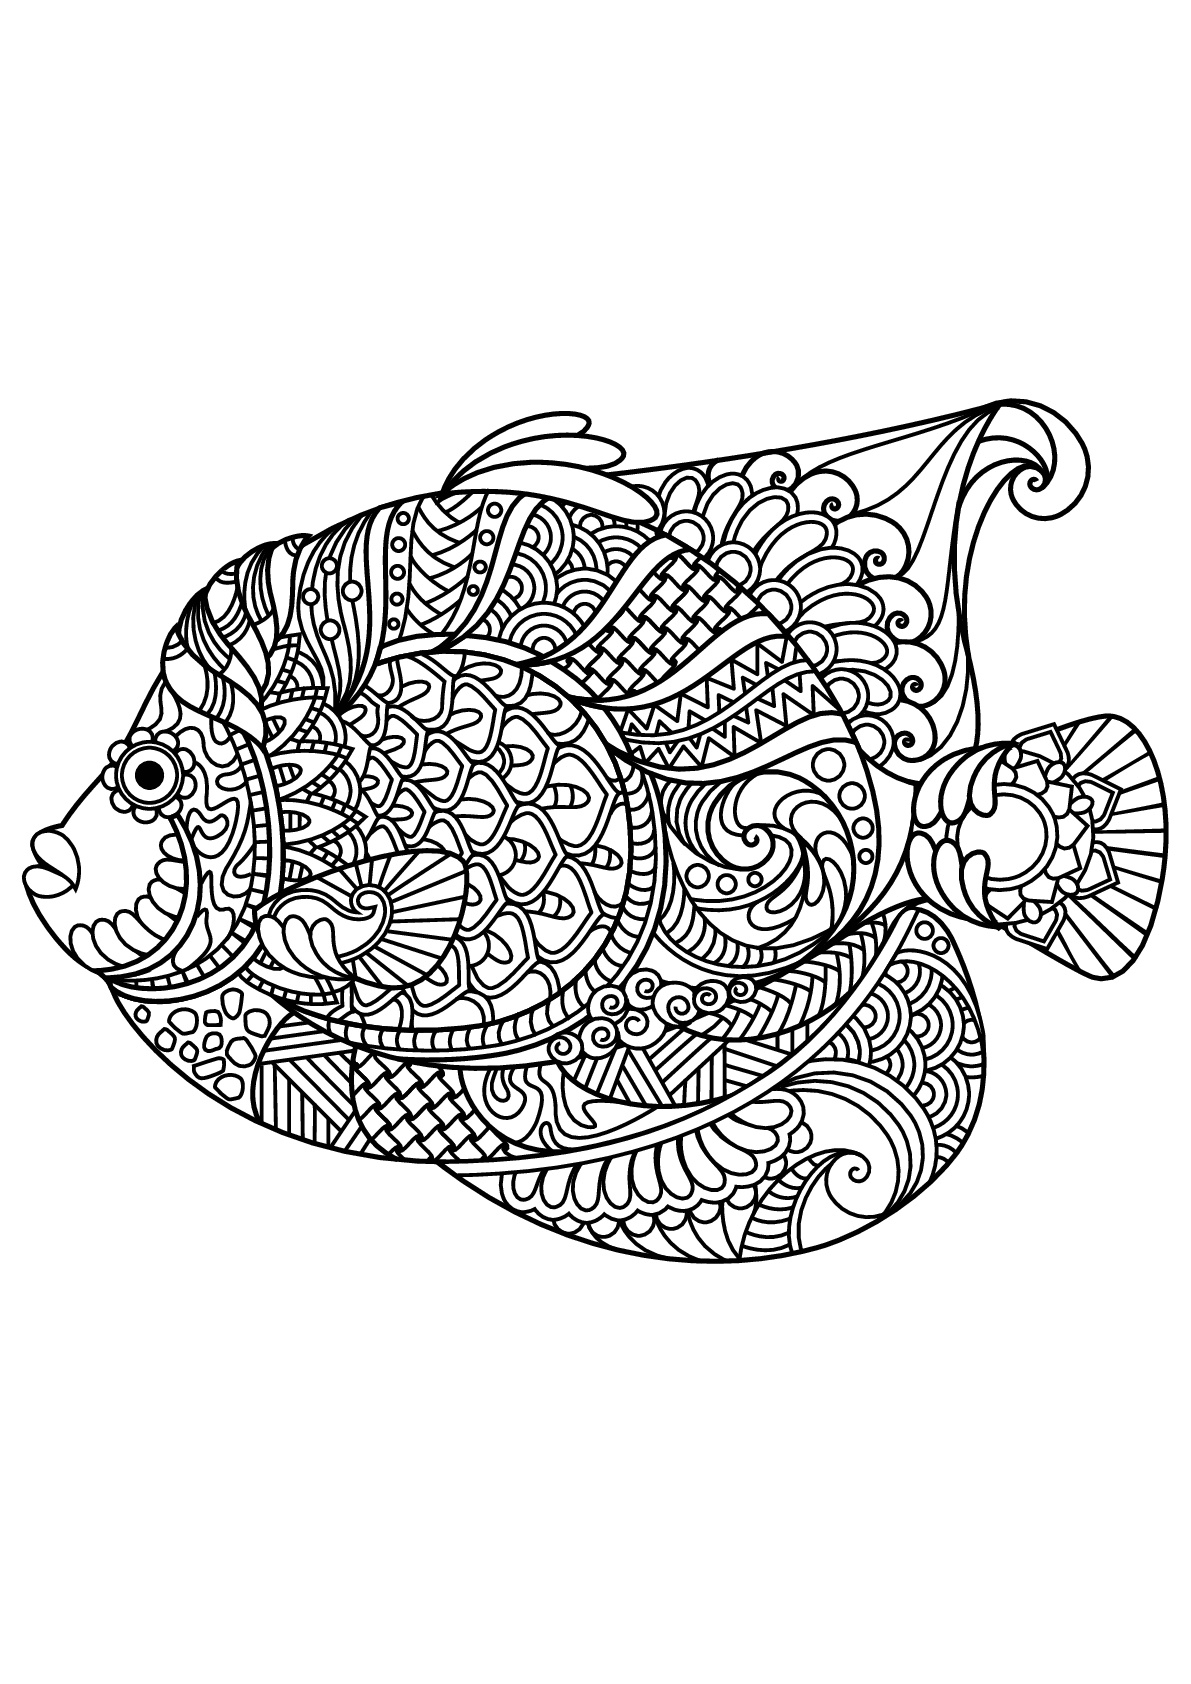 Incredible Pisces coloring page to print and color for free